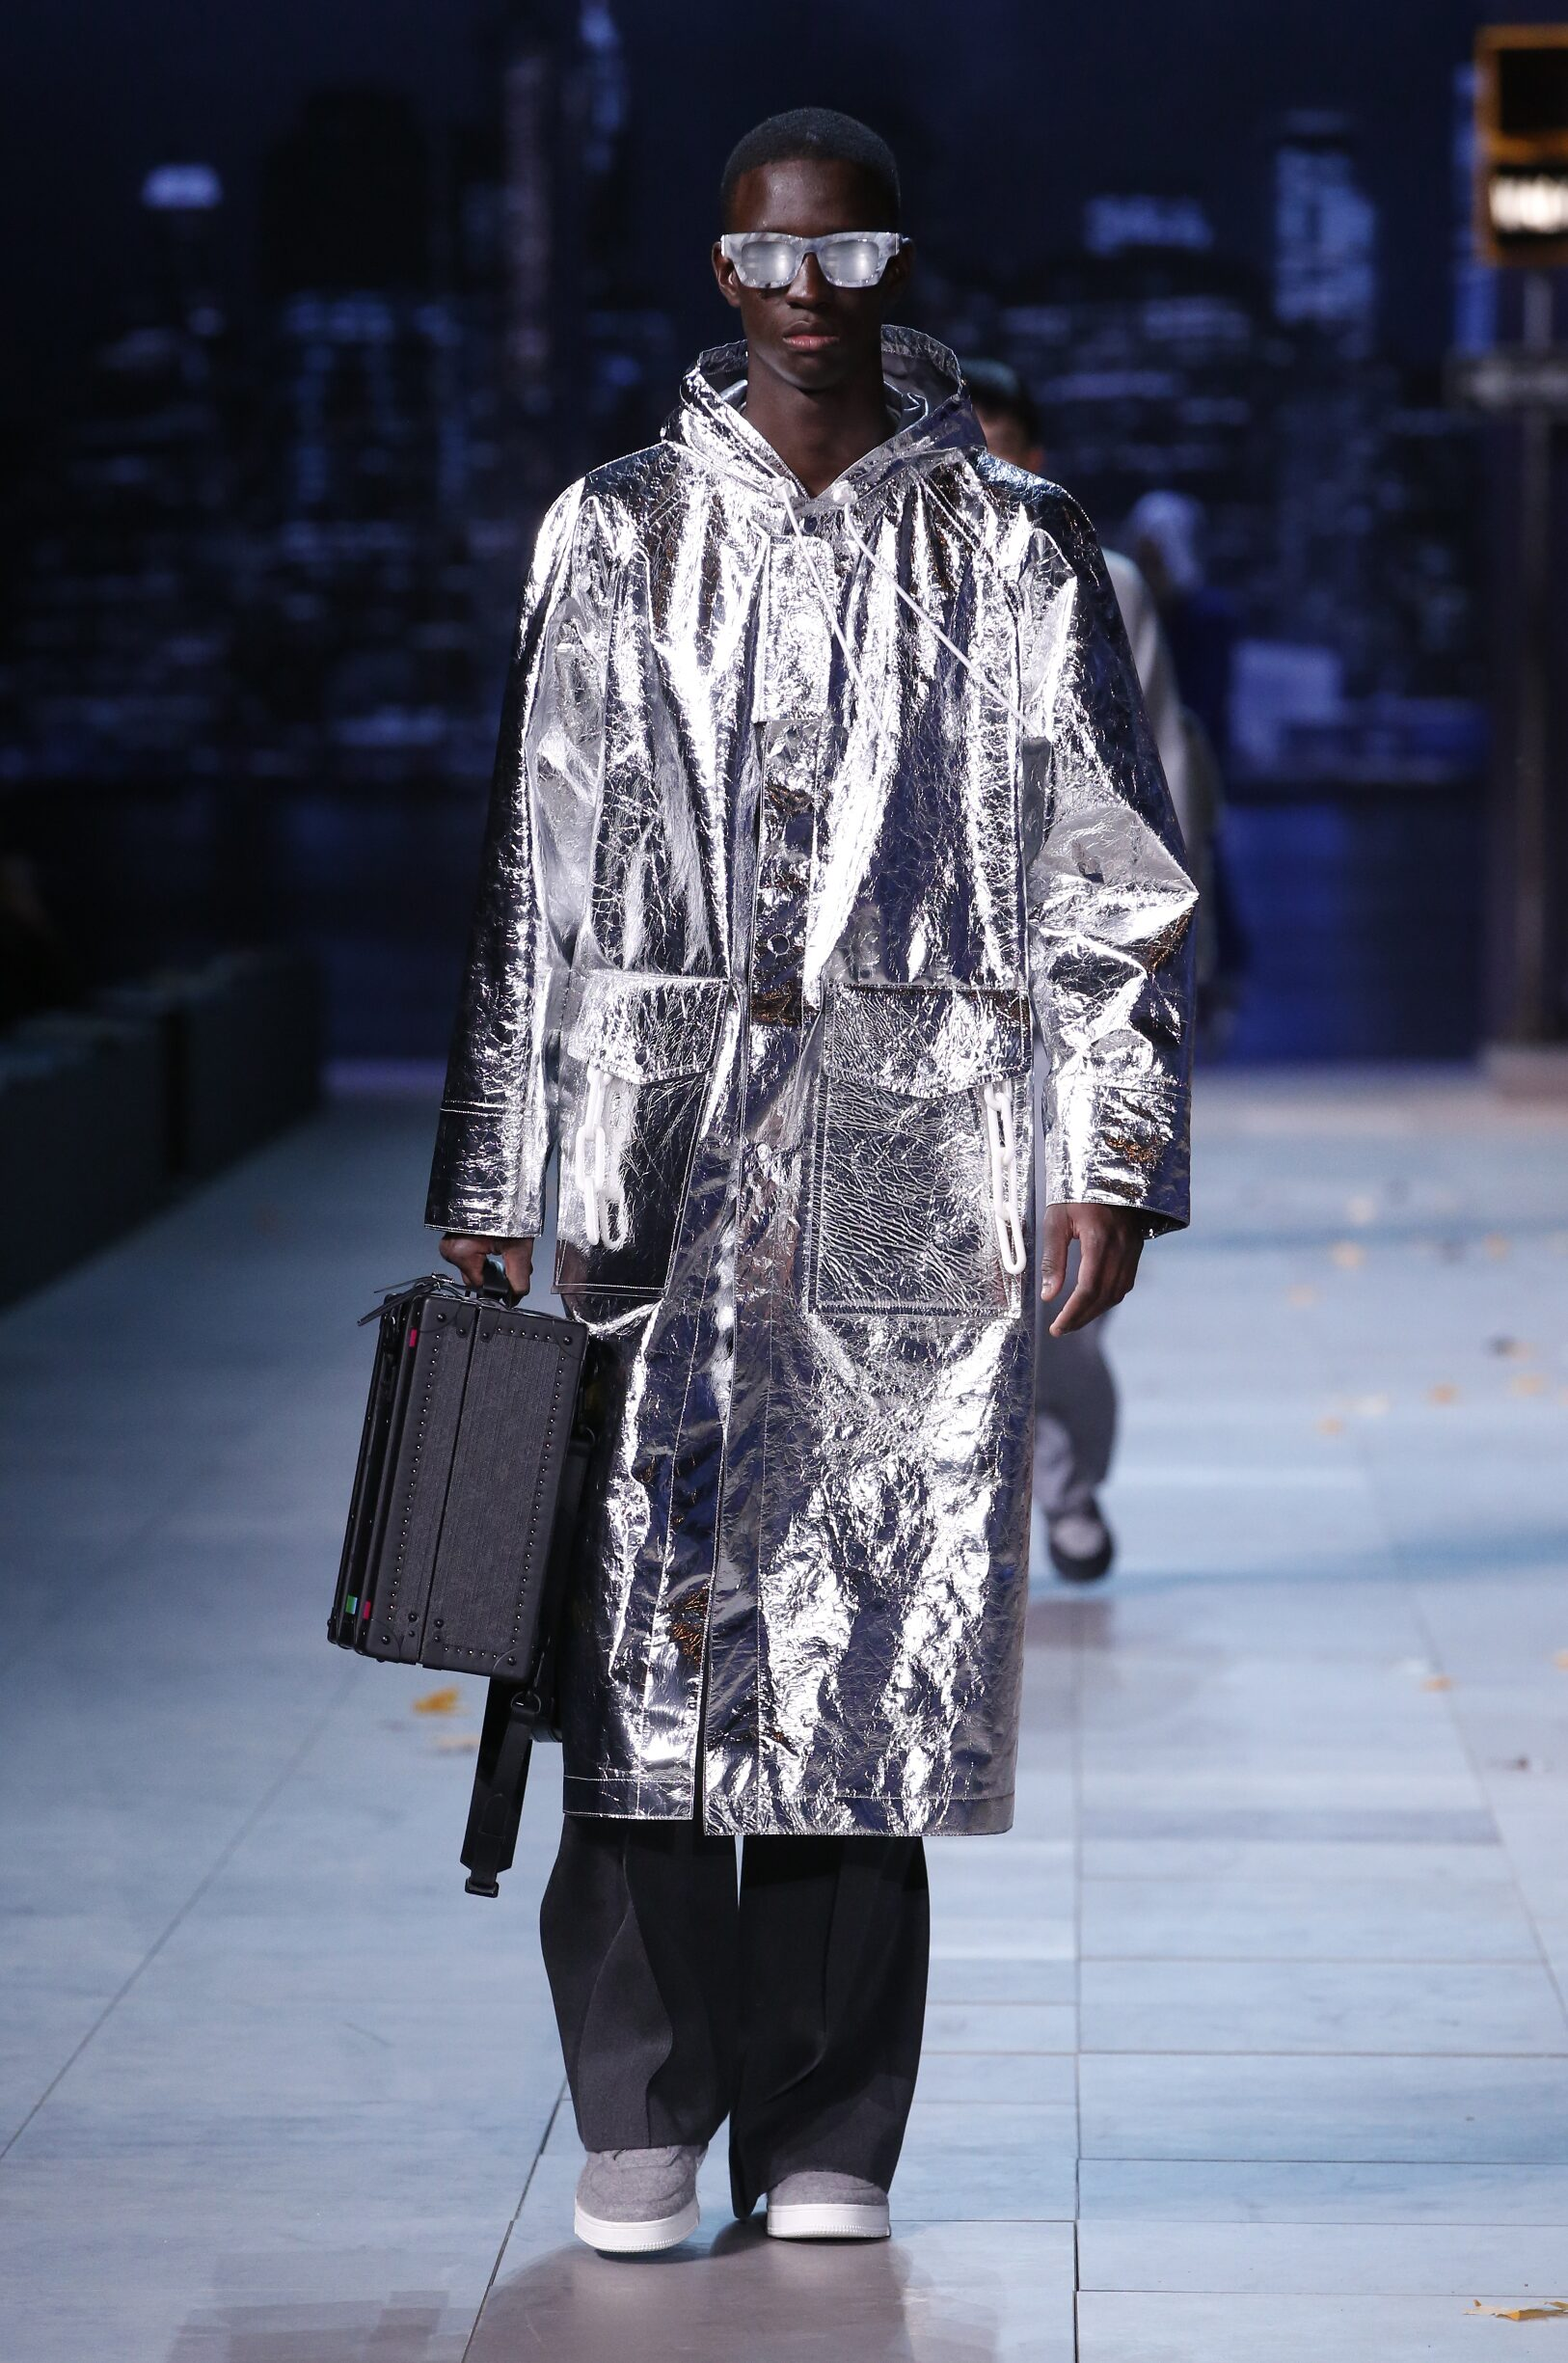 Louis Vuitton Menswear Fashion Show